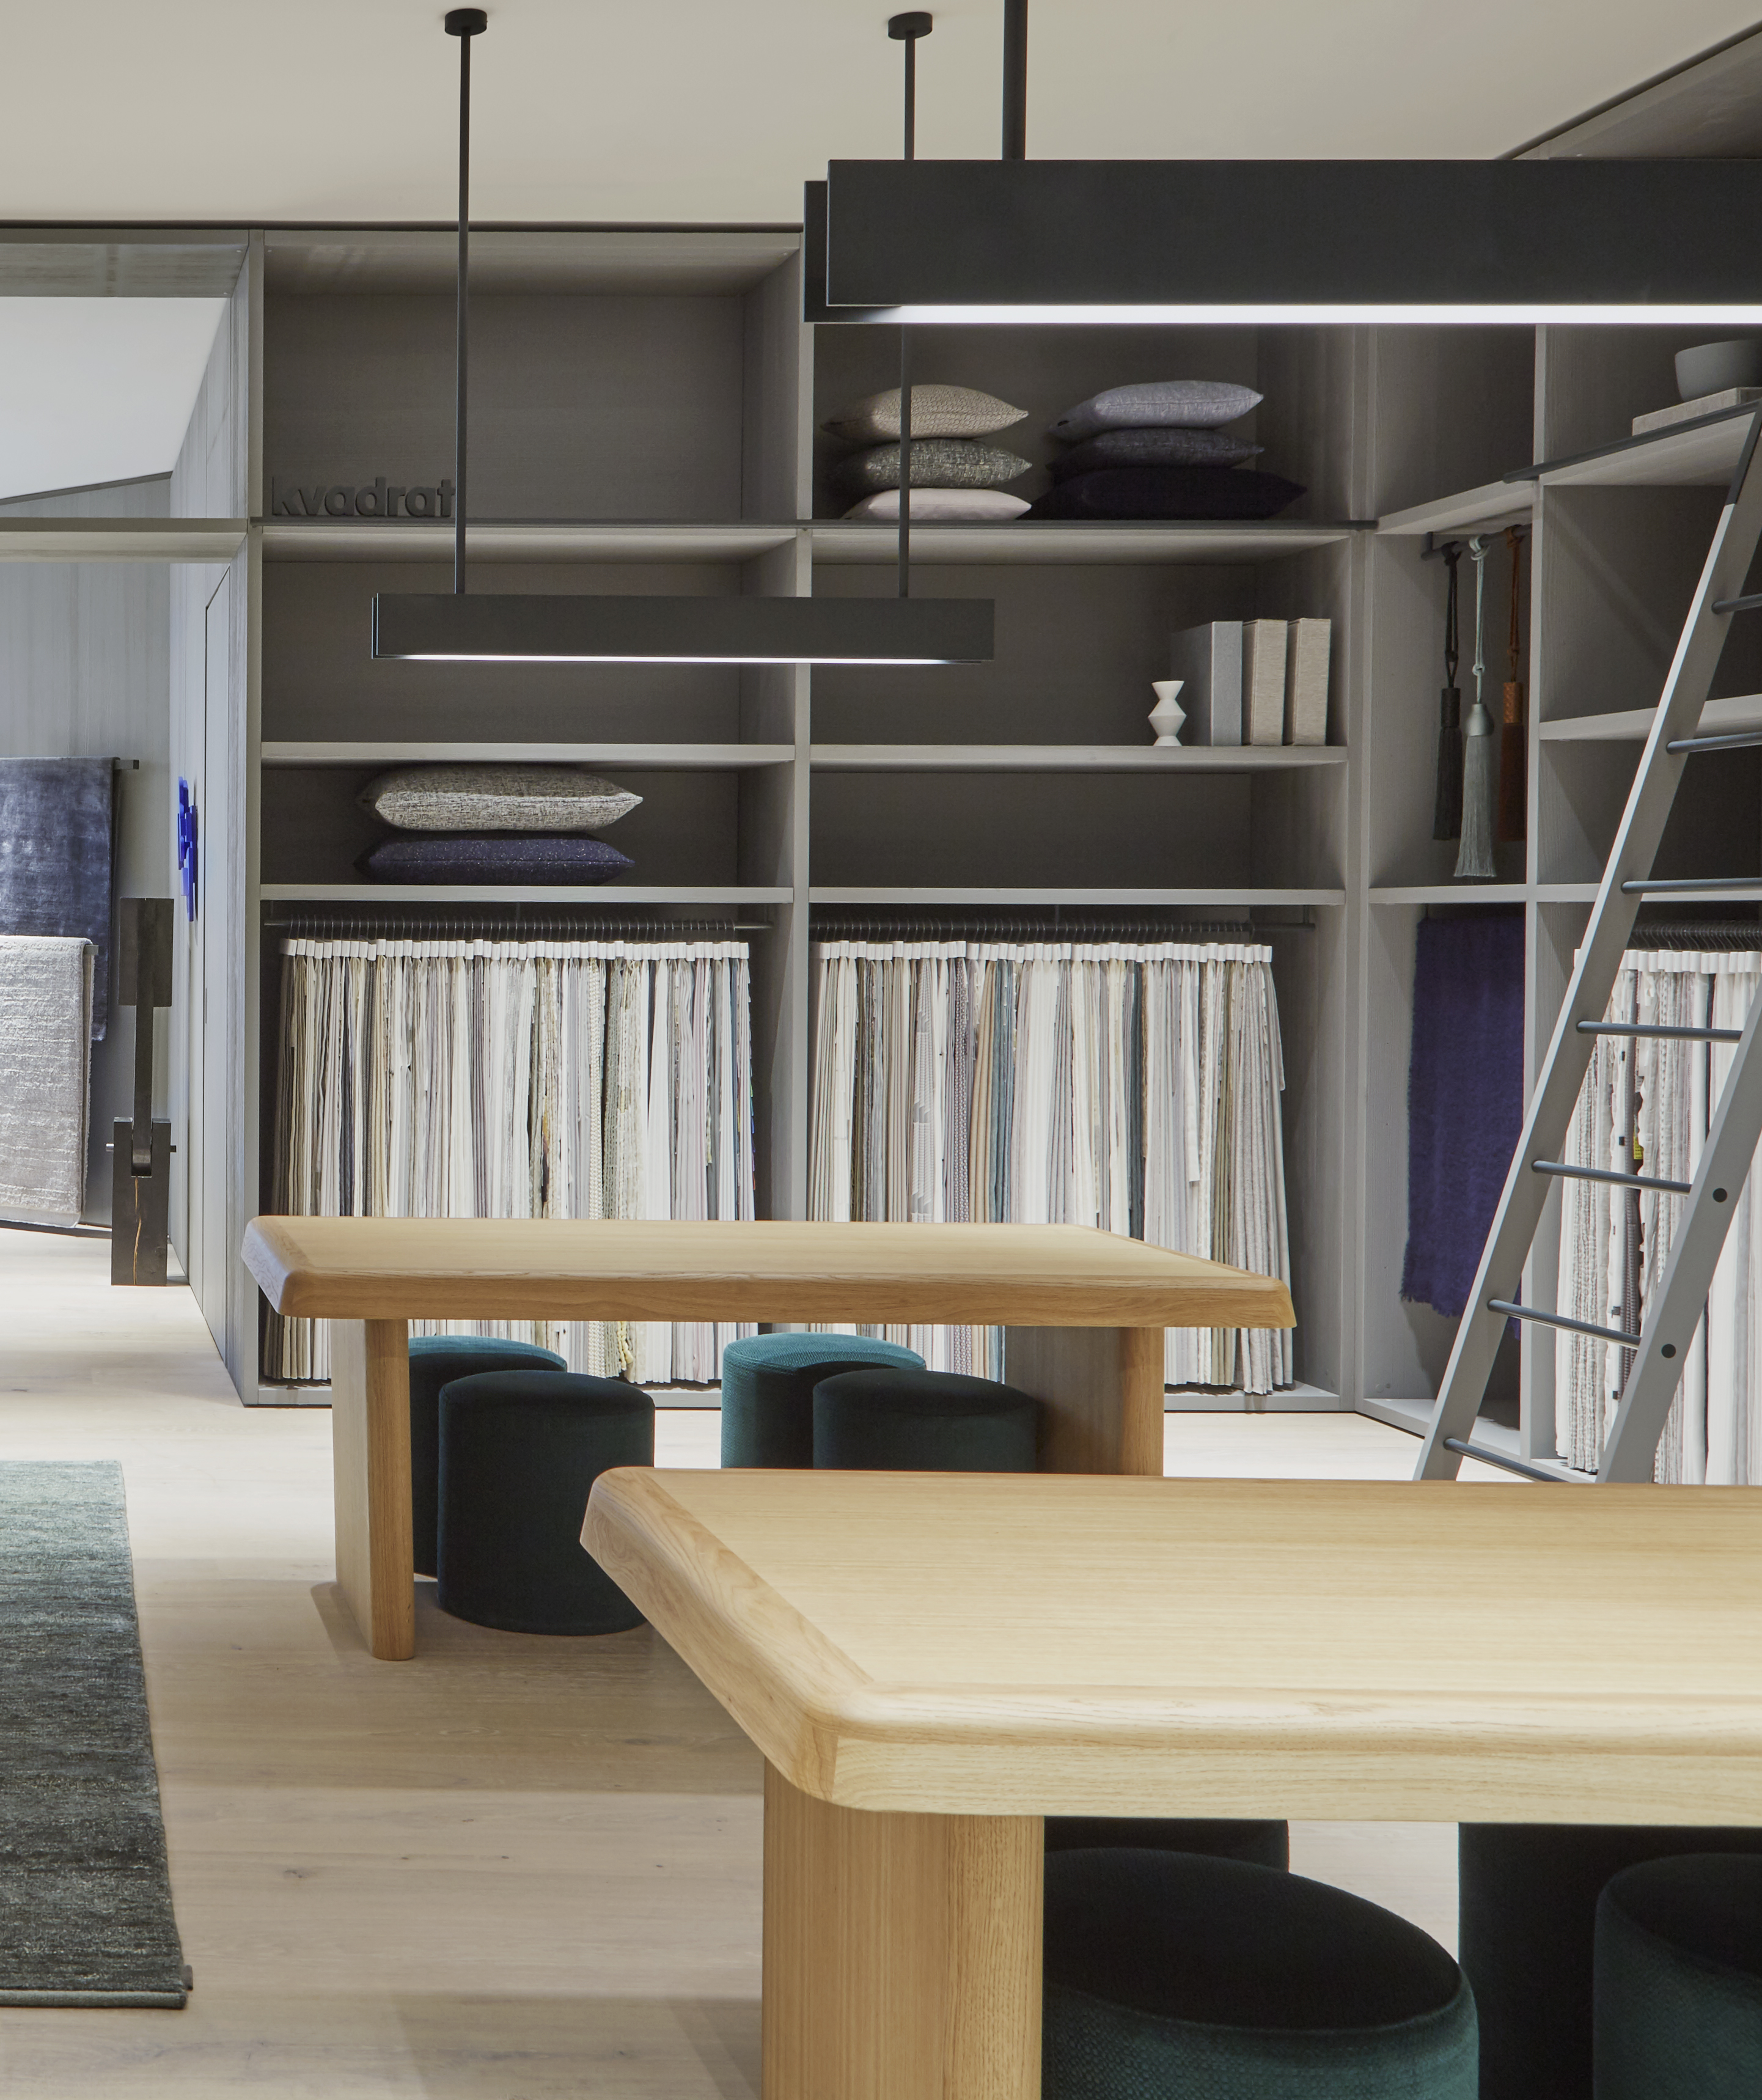 Kvadrat At Home Space Vvd 2